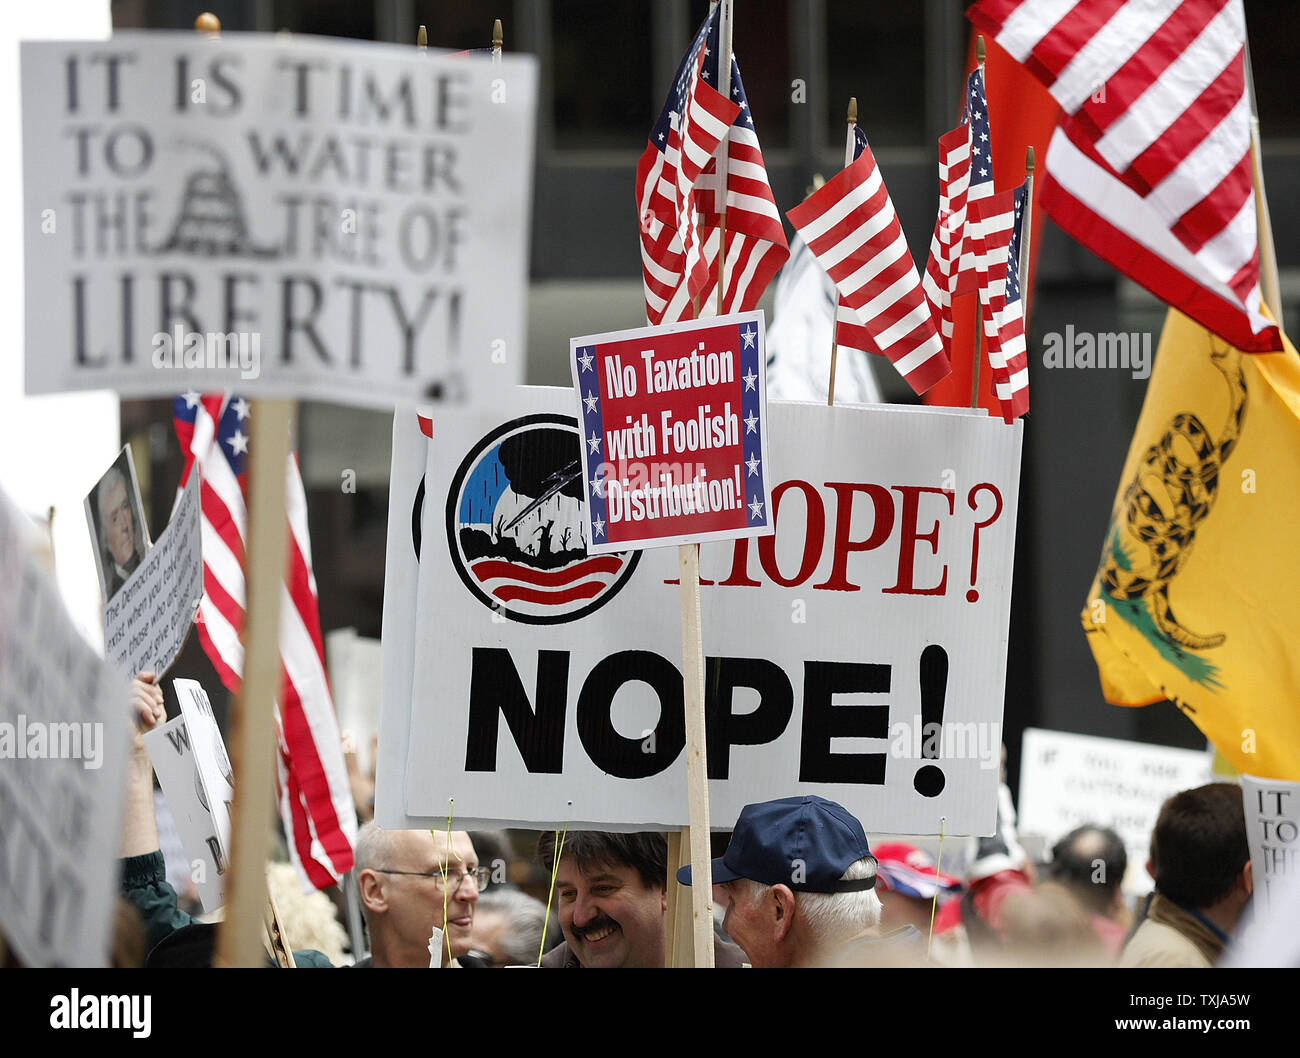 Protesters hold up signs at a